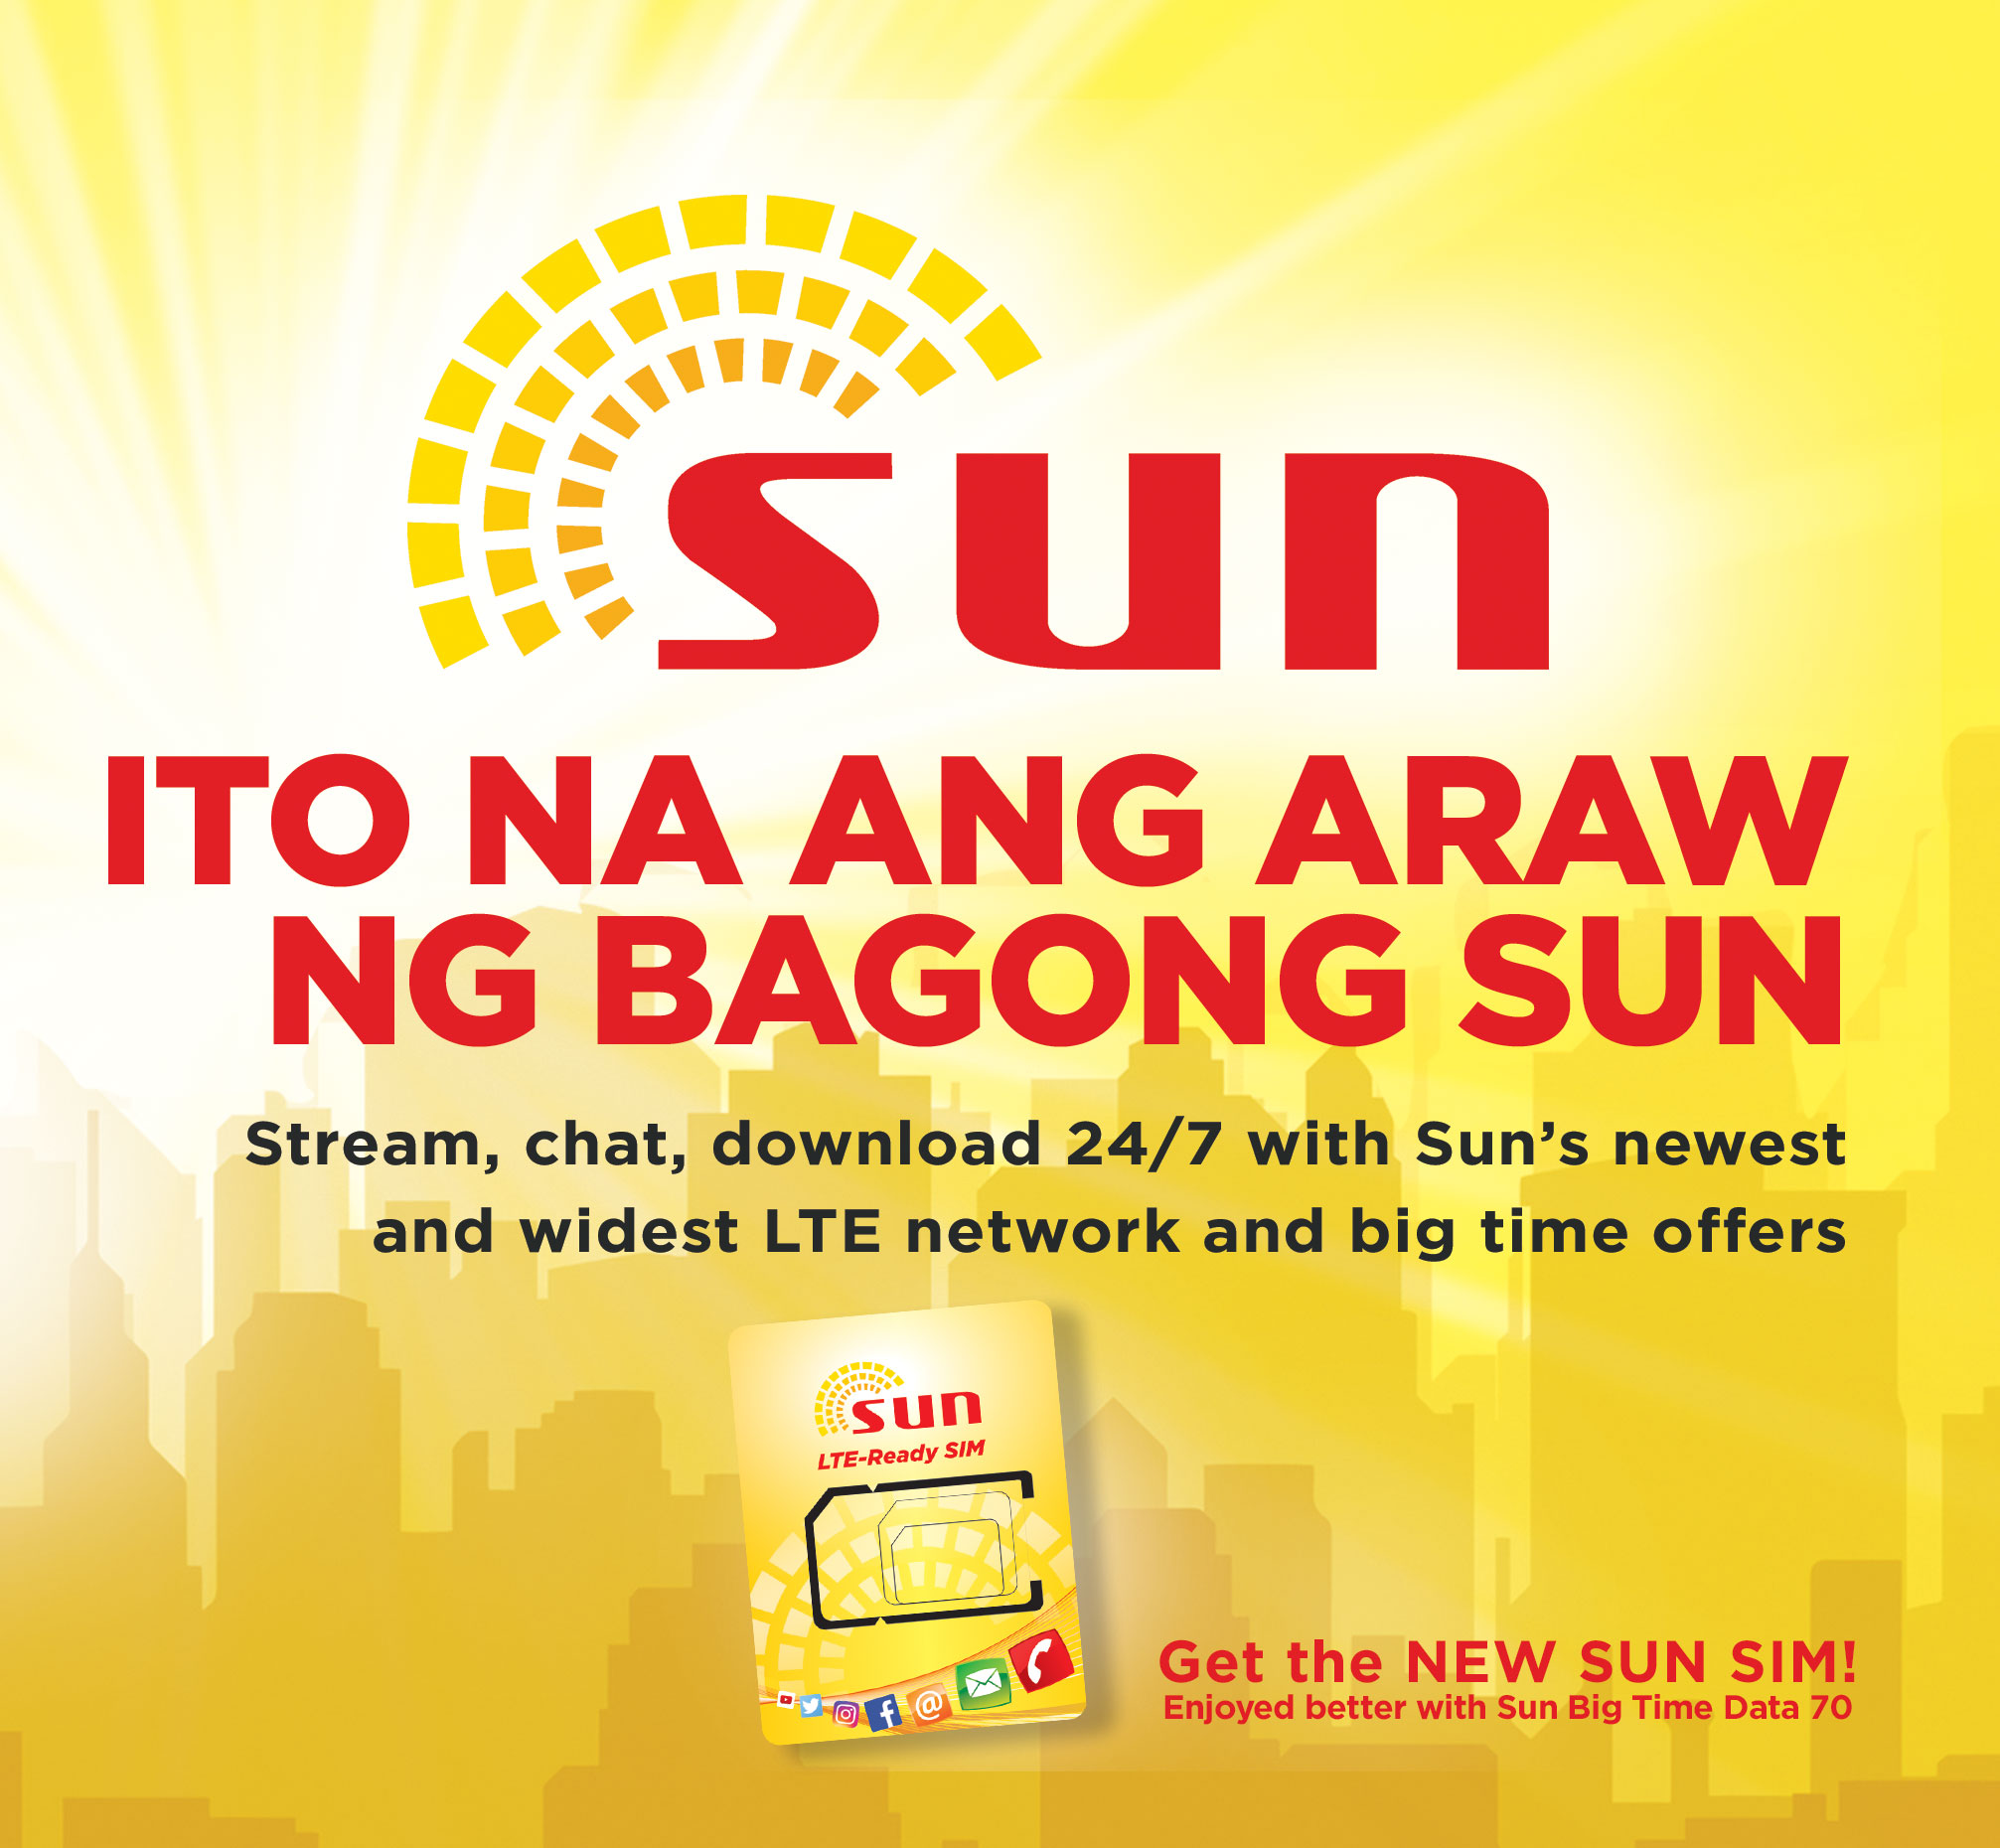 sun upgrades network to lte rolls out new affordable data offers